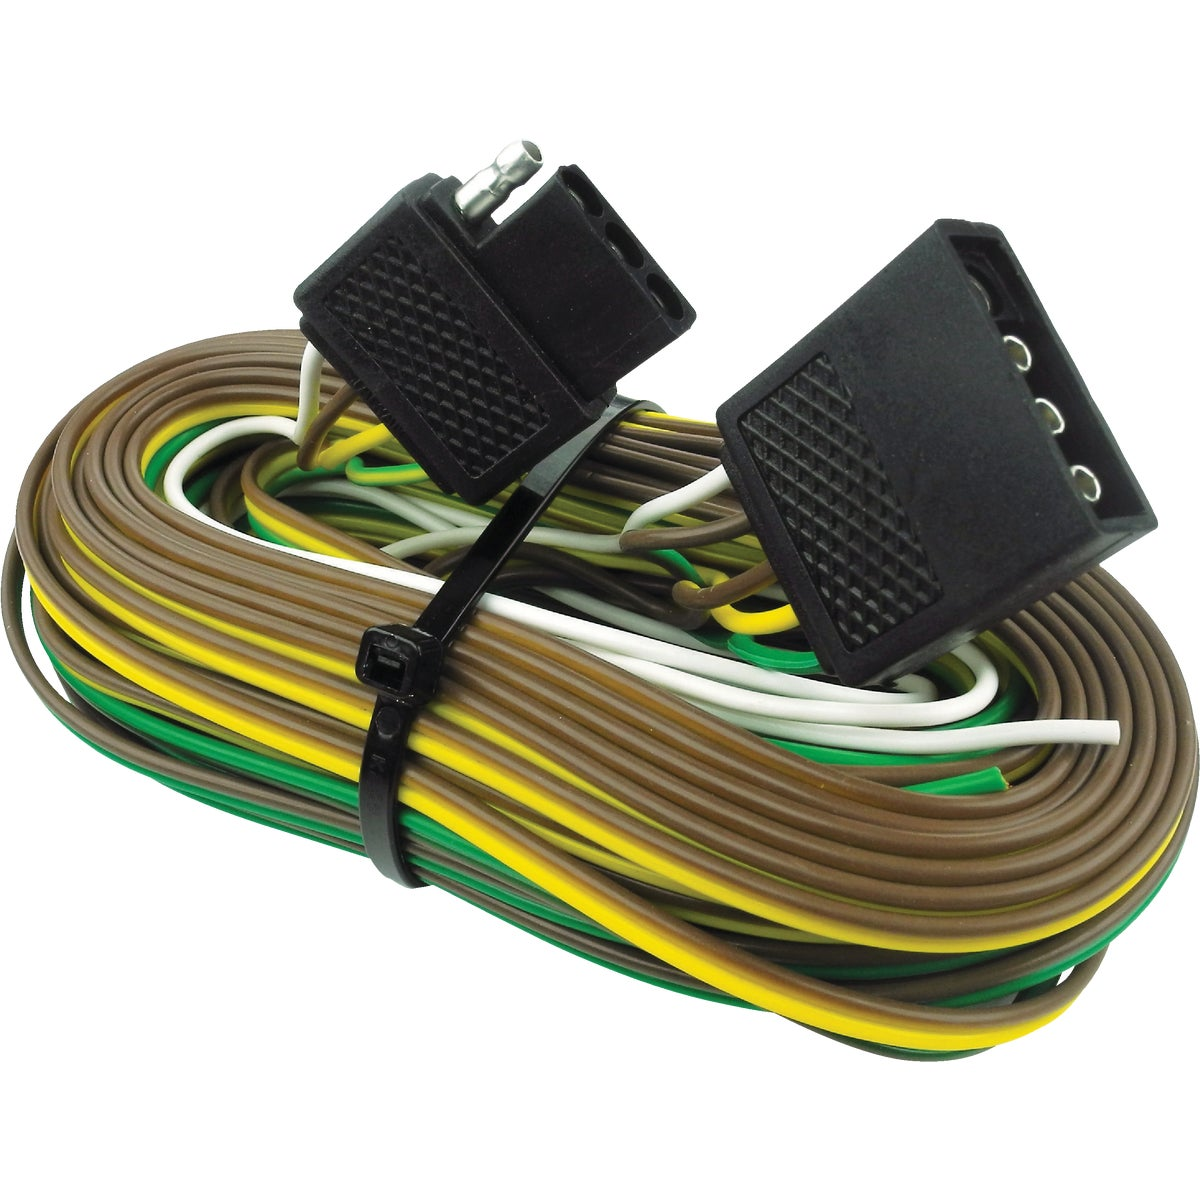 Y TRAILER HARNESS